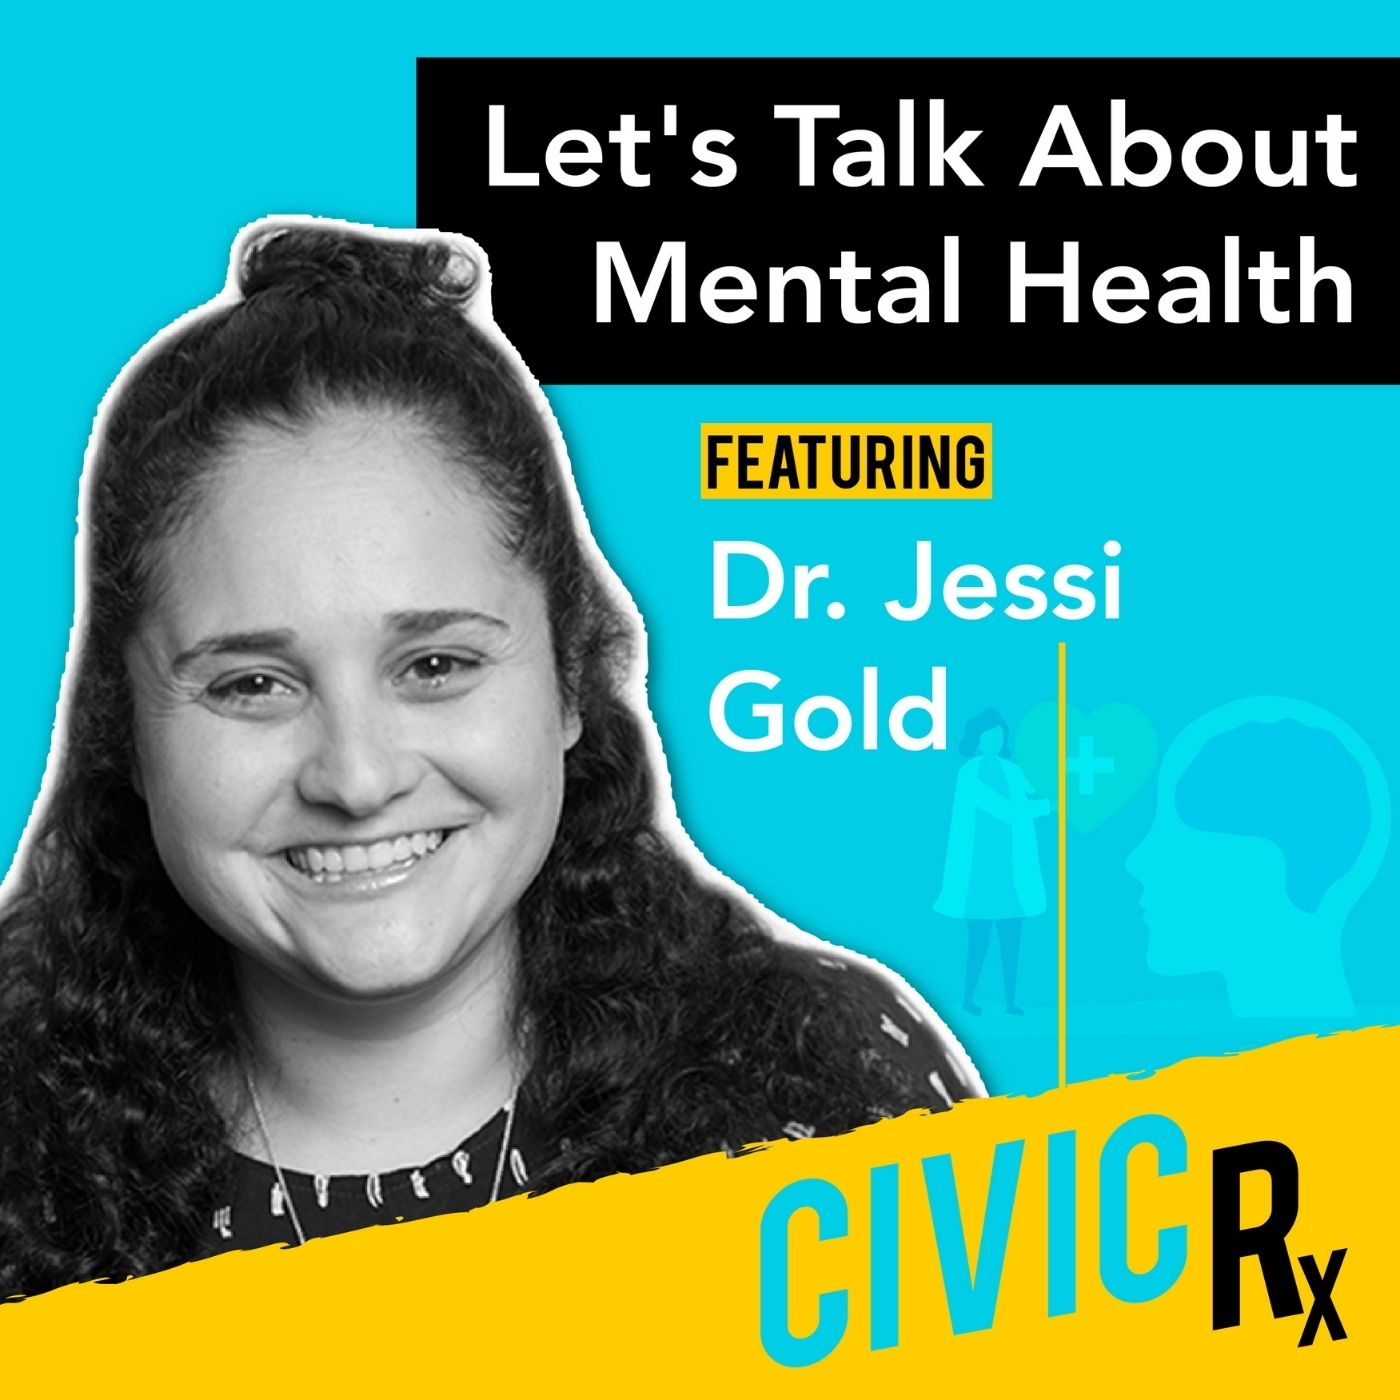 Let's talk about our mental health, with Dr. Jessi Gold (EP.15)